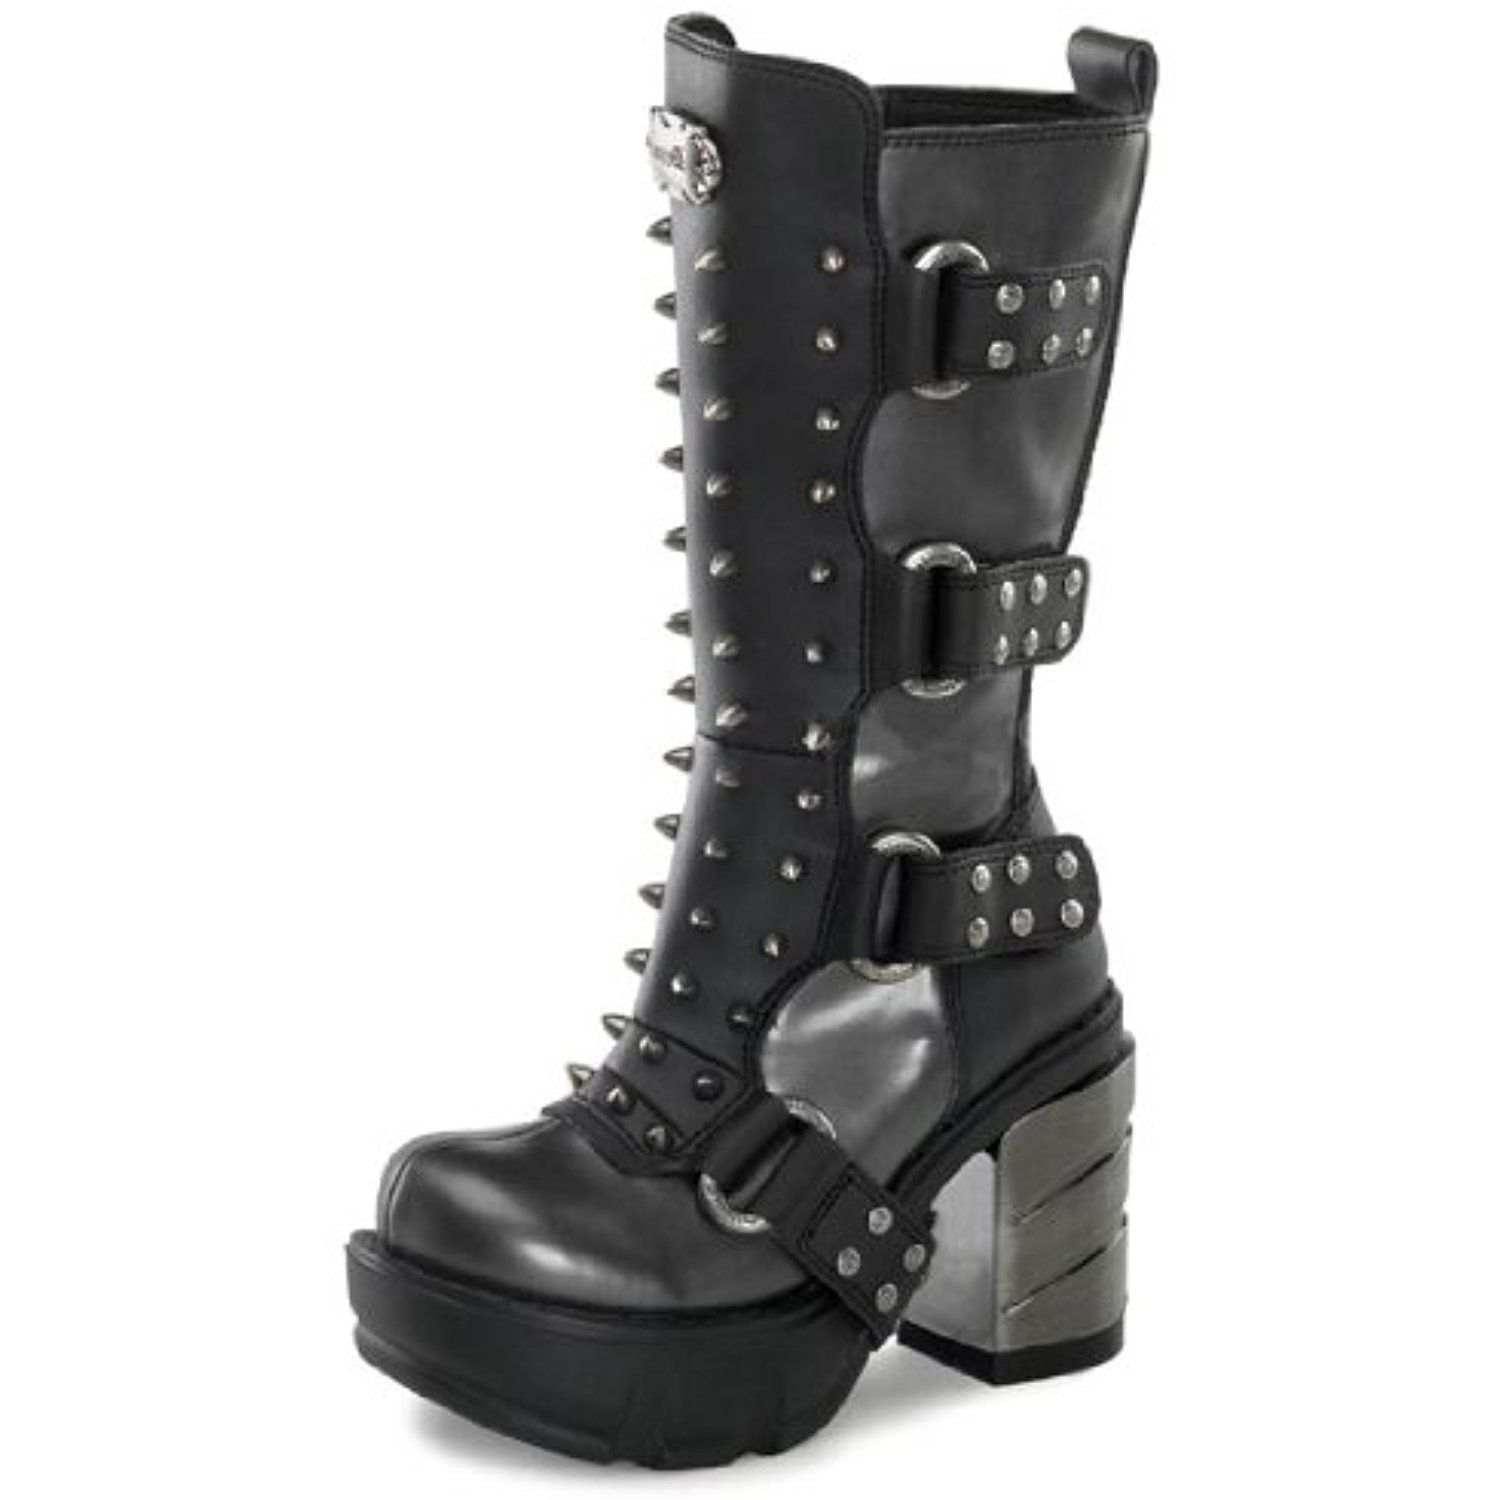 Womens Sizing Vegan Grey and Black Mid Calf Boots with Spikes and 3.5 Heels